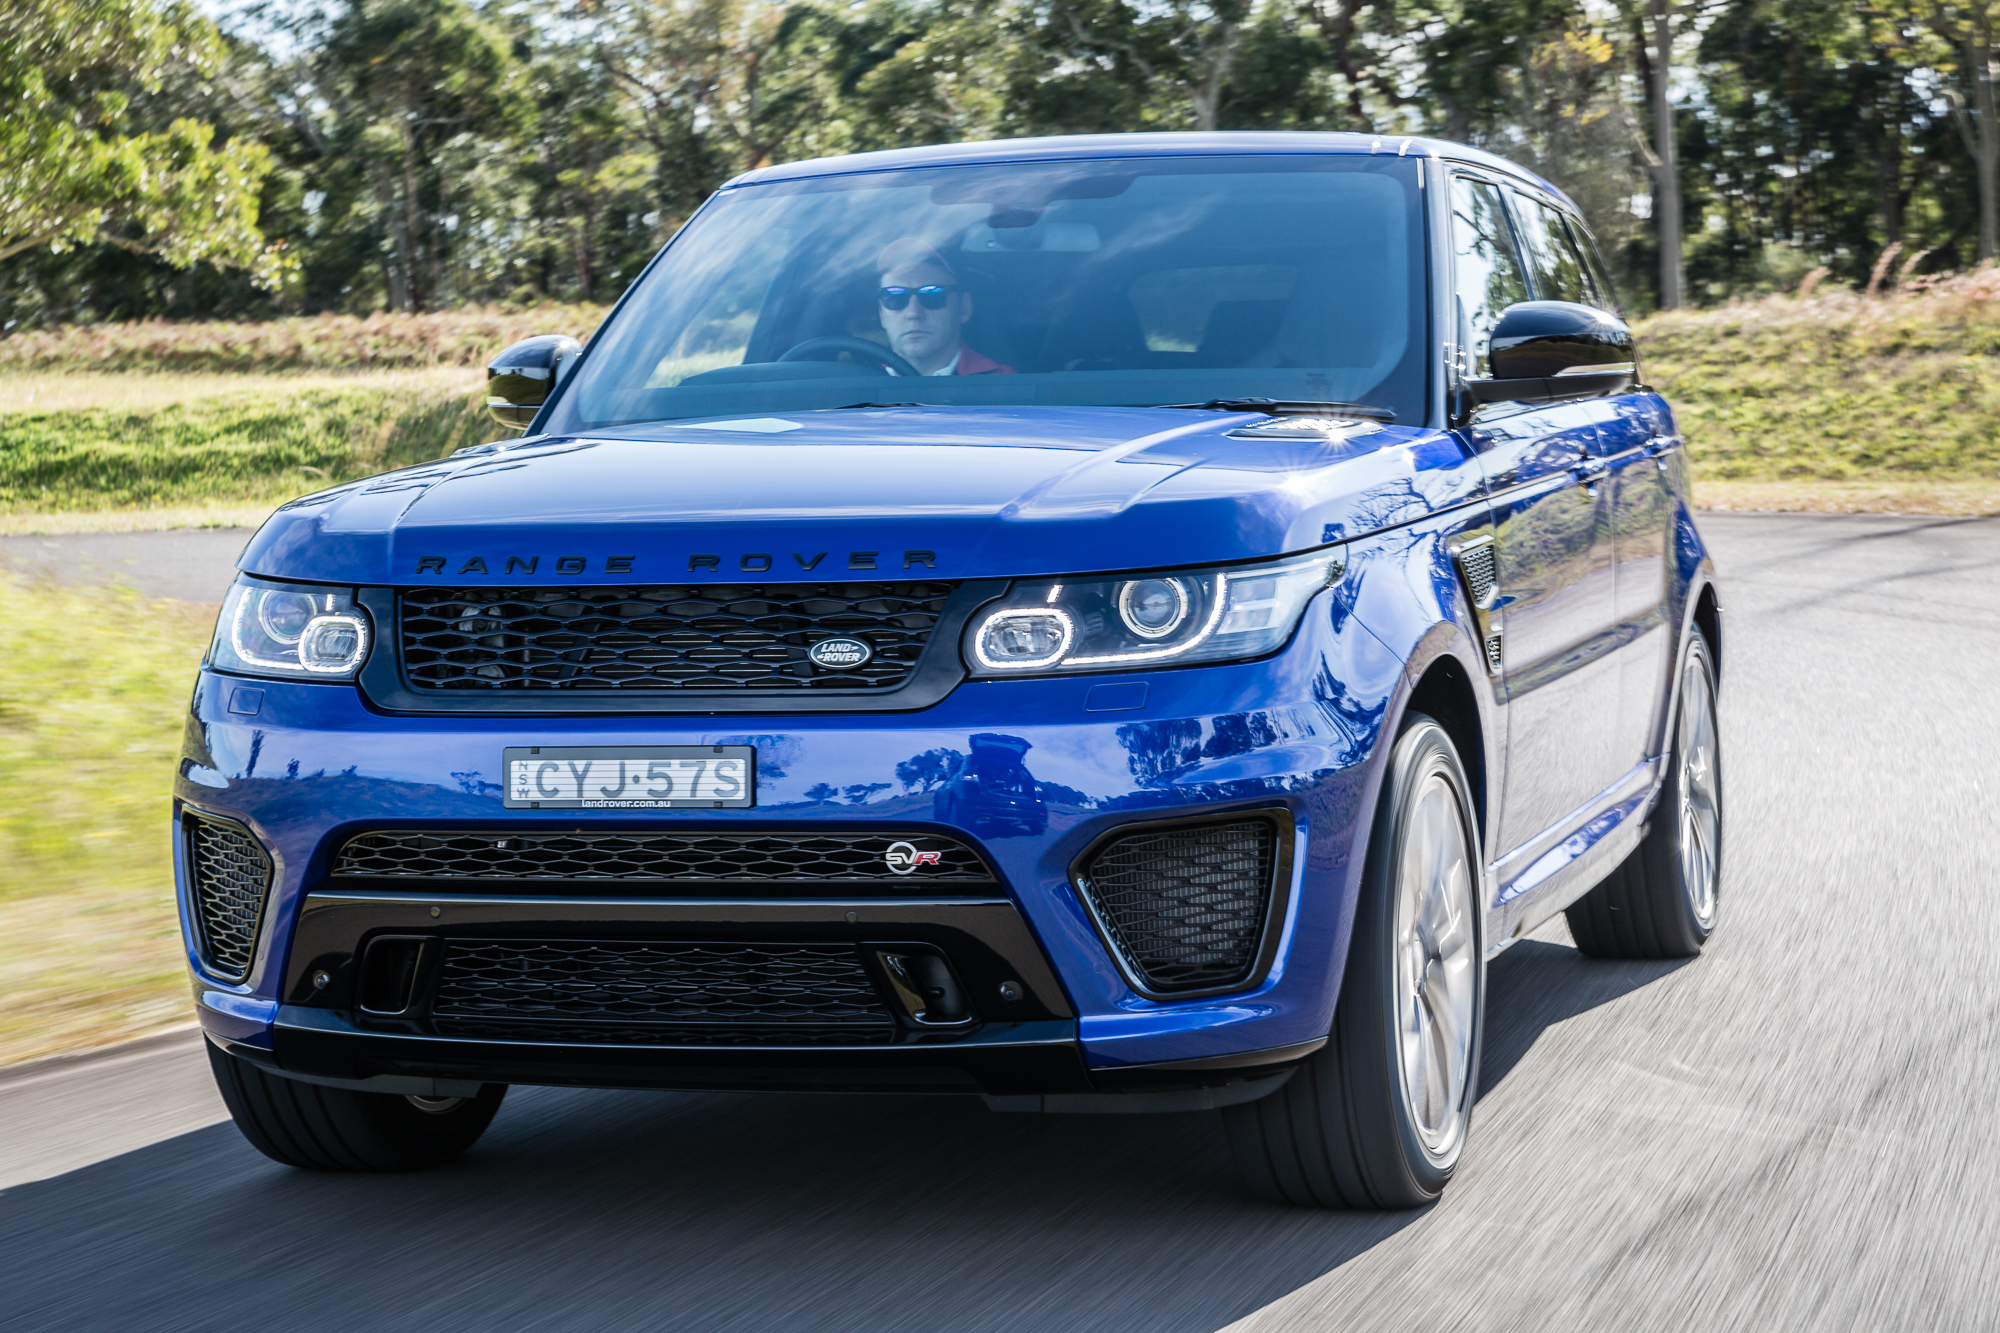 Awesome 2015 Range Rover Sport SVR Review  CarAdvice